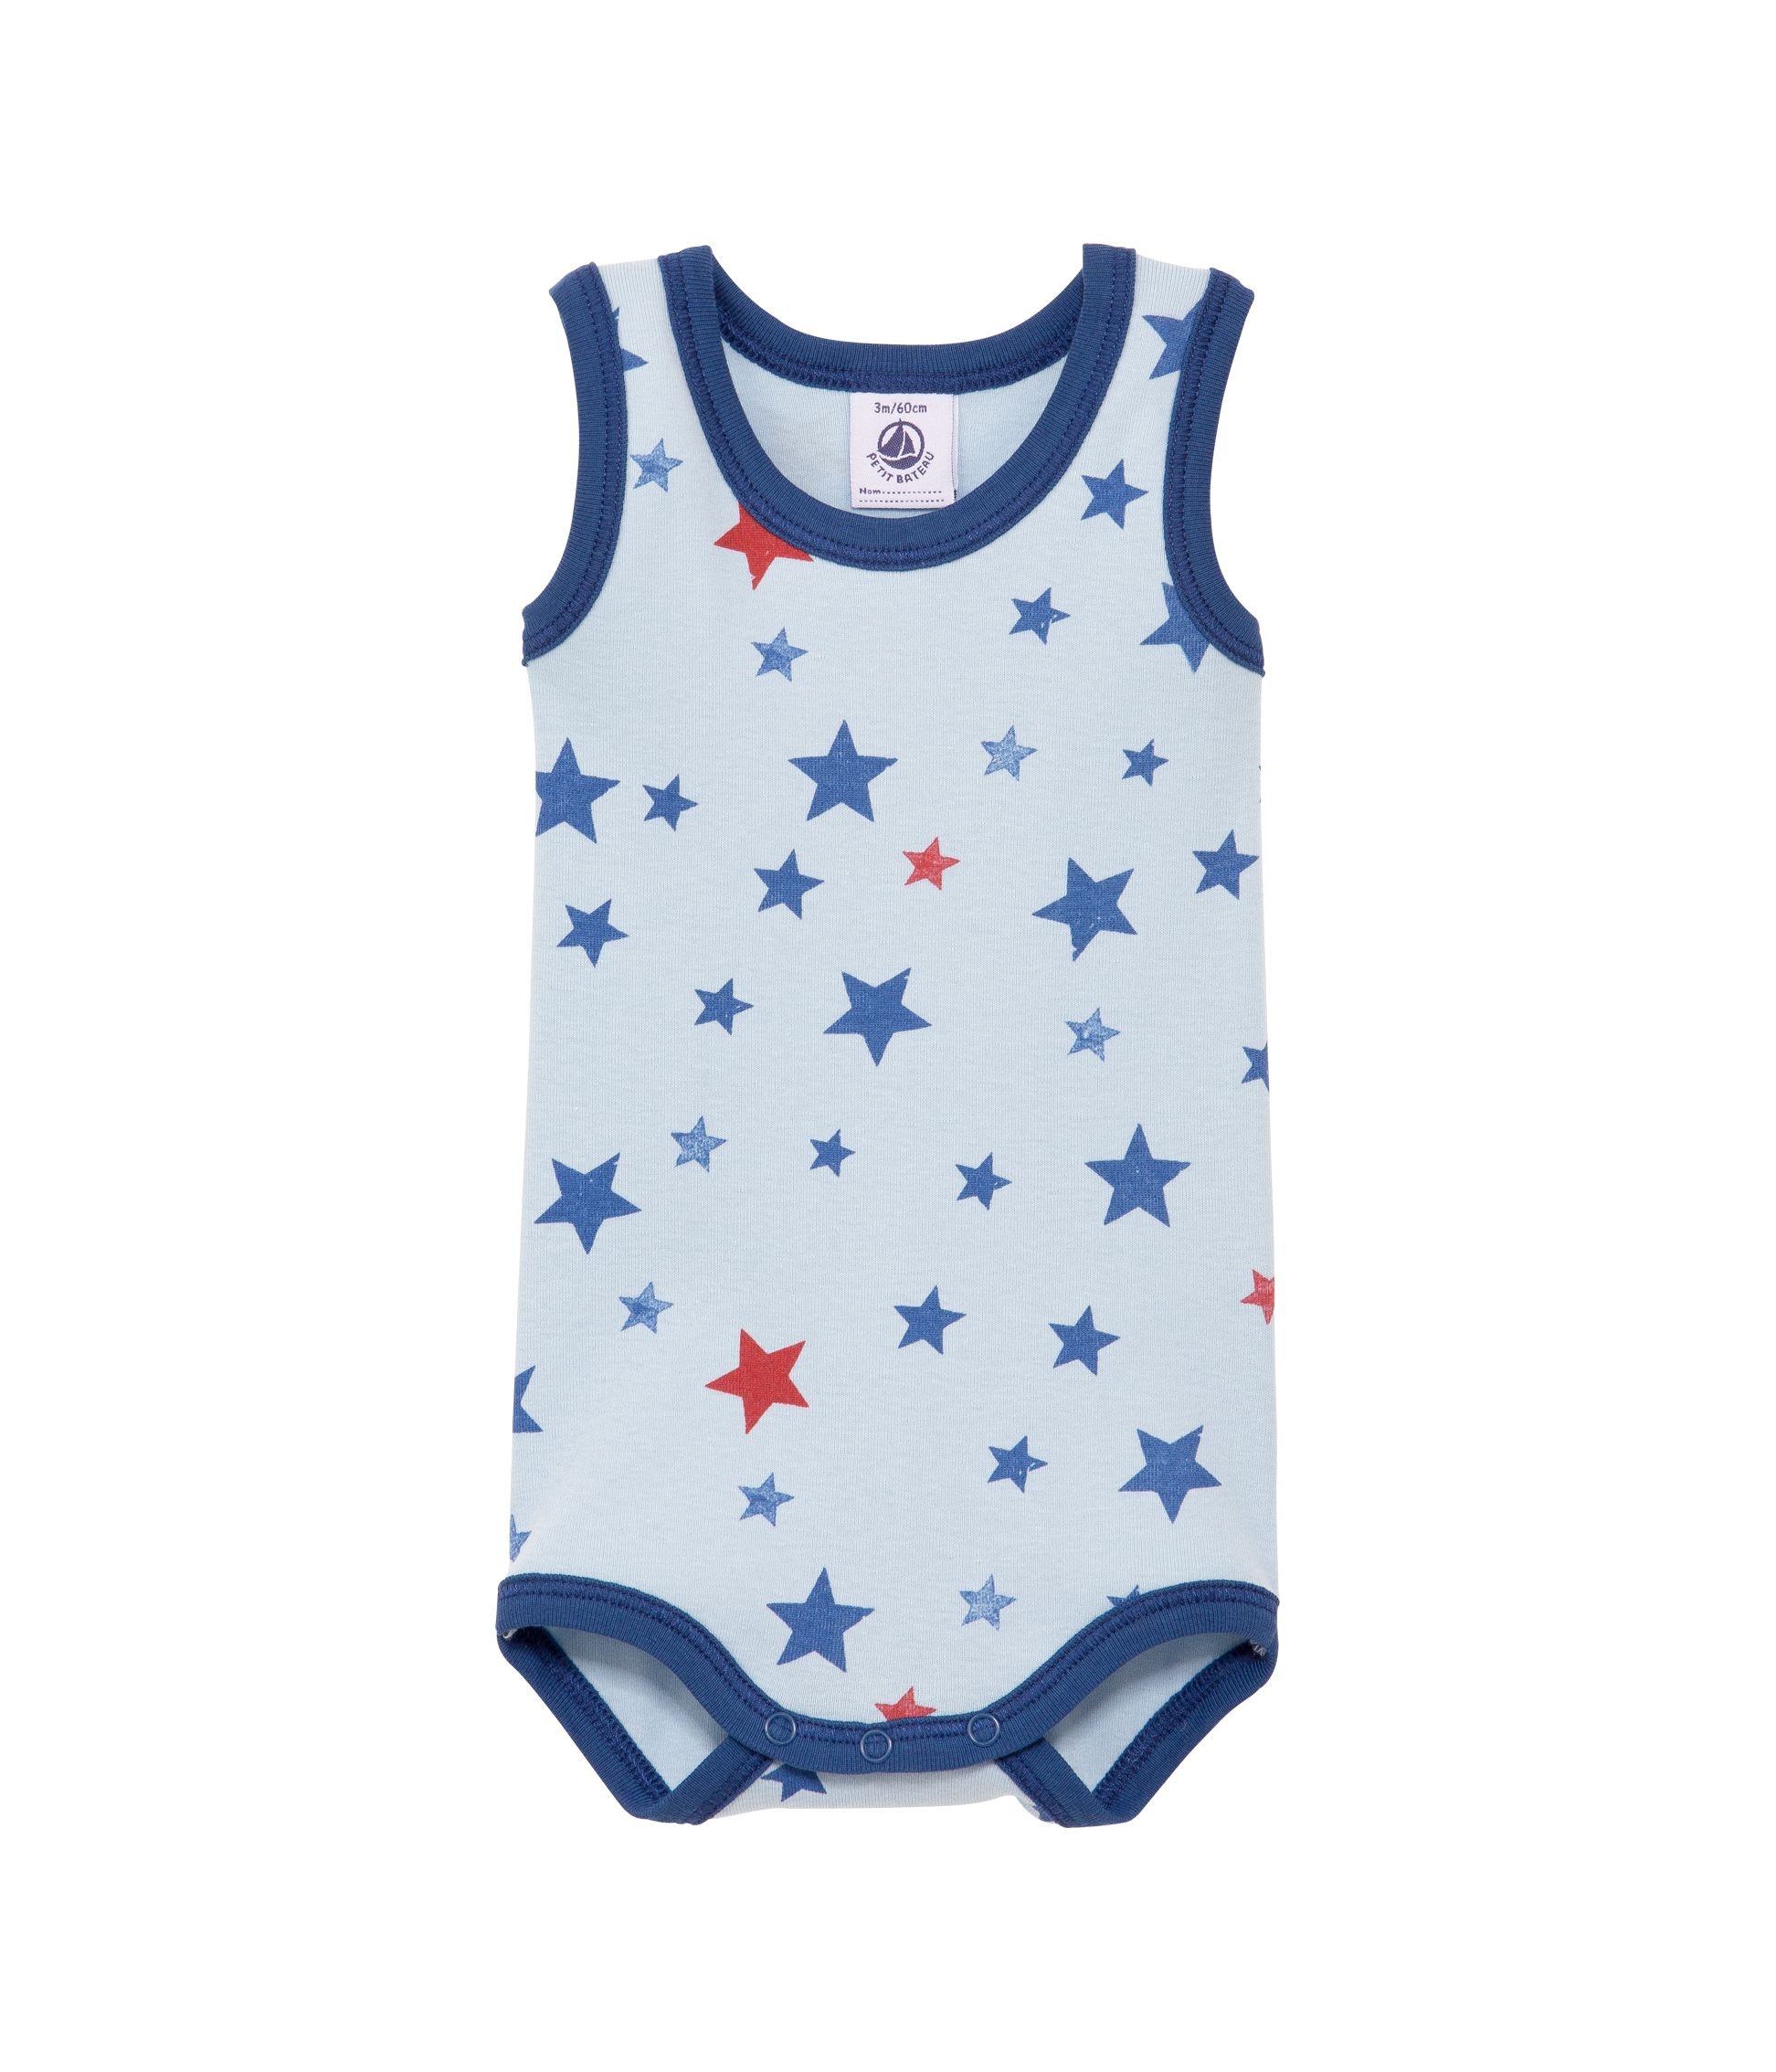 Baby boys star print sleeveless bodysuit